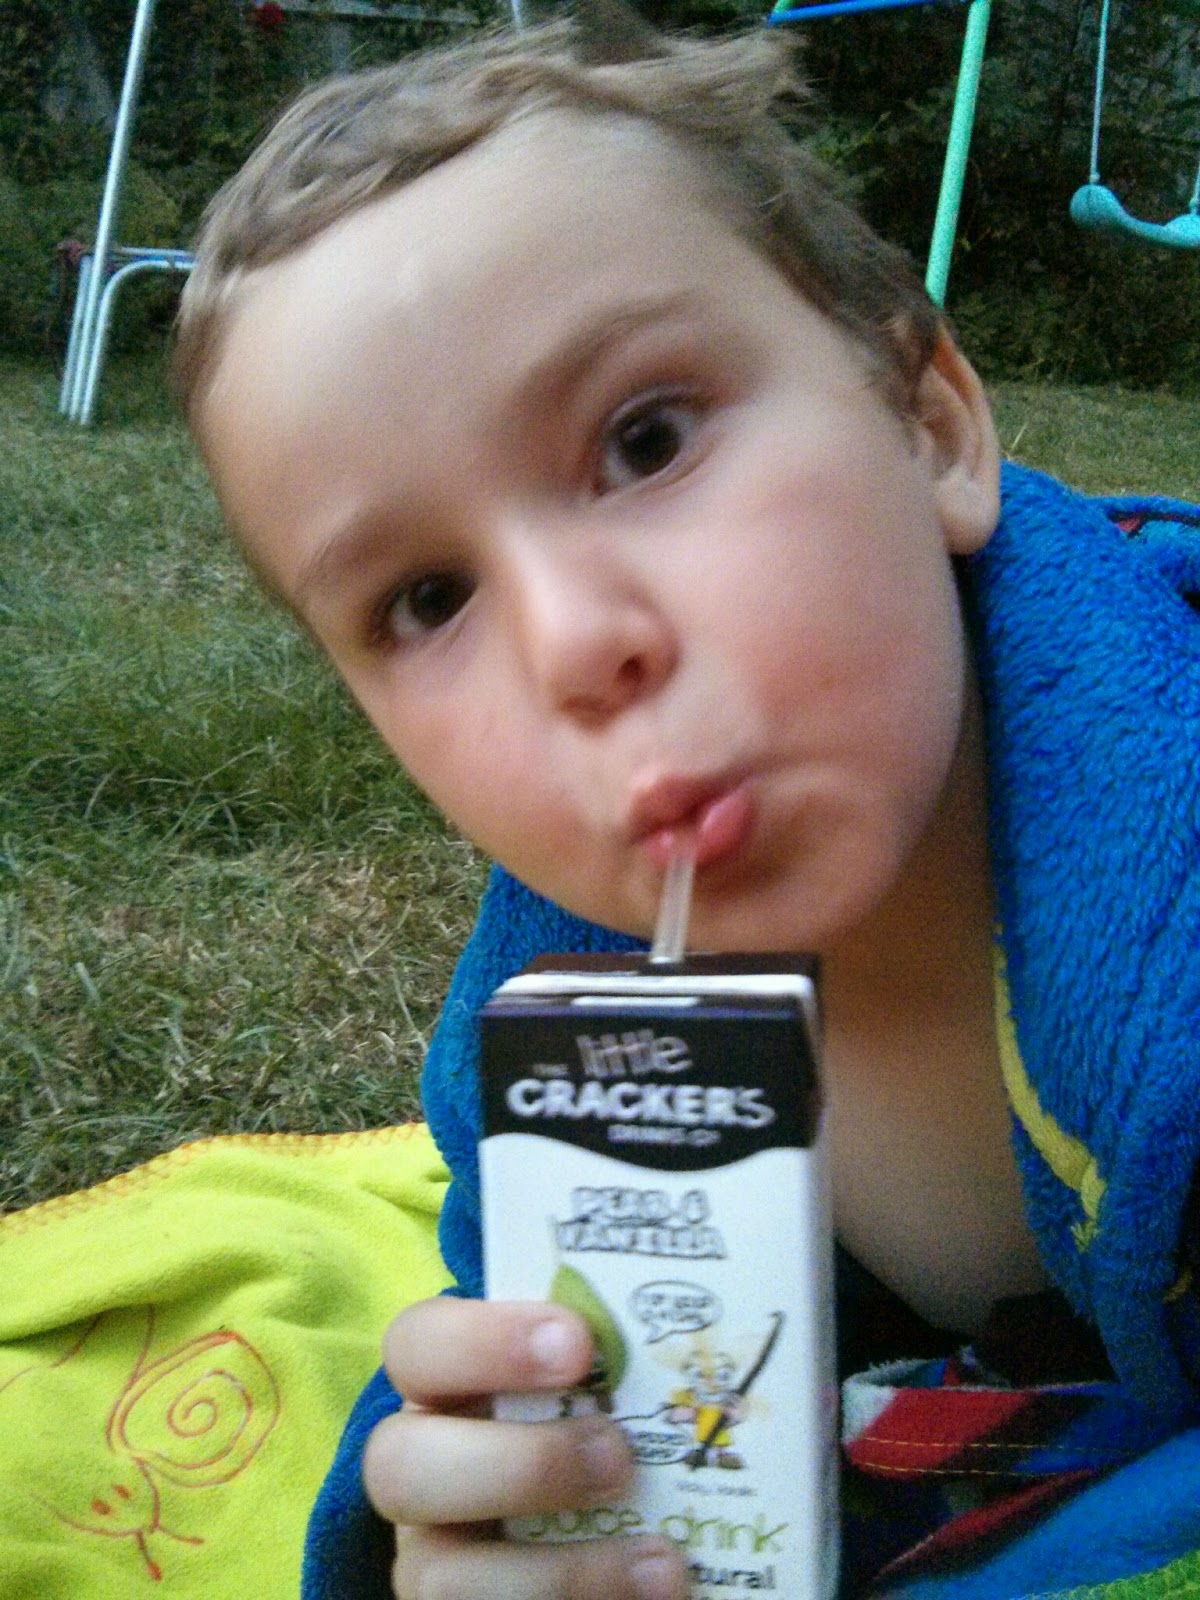 Big Boy slurping on a Little Cracker Juice Drink